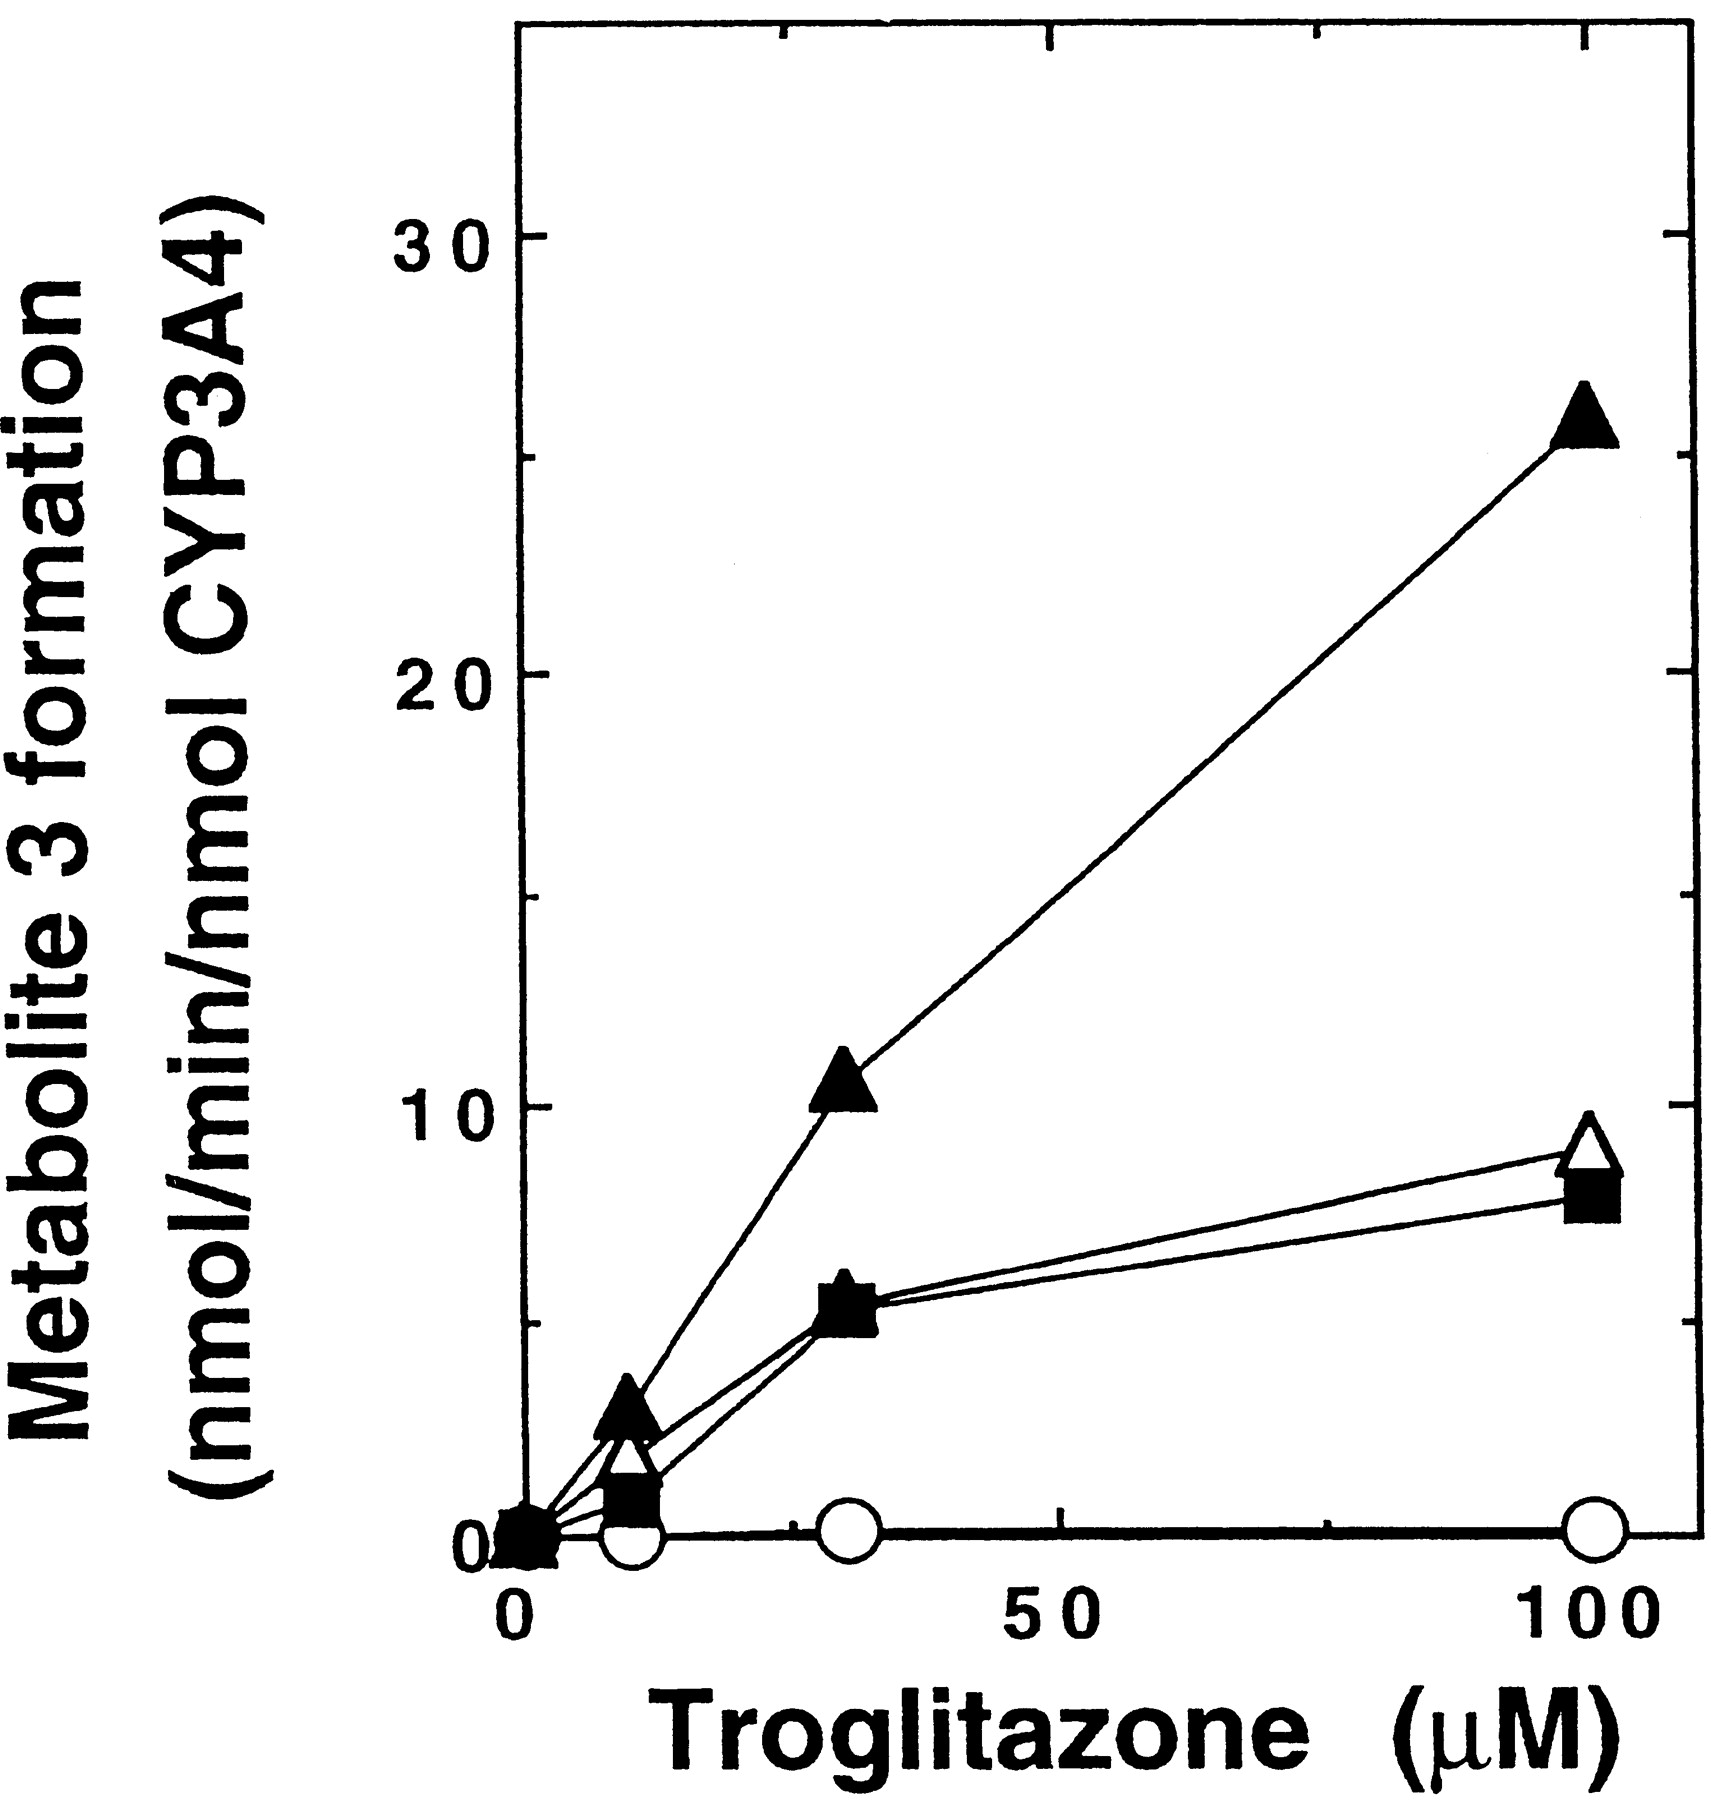 Oxidation Of Troglitazone To A Quinone Type Metabolite Catalyzed By Cytochrome P 450 2c8 And P